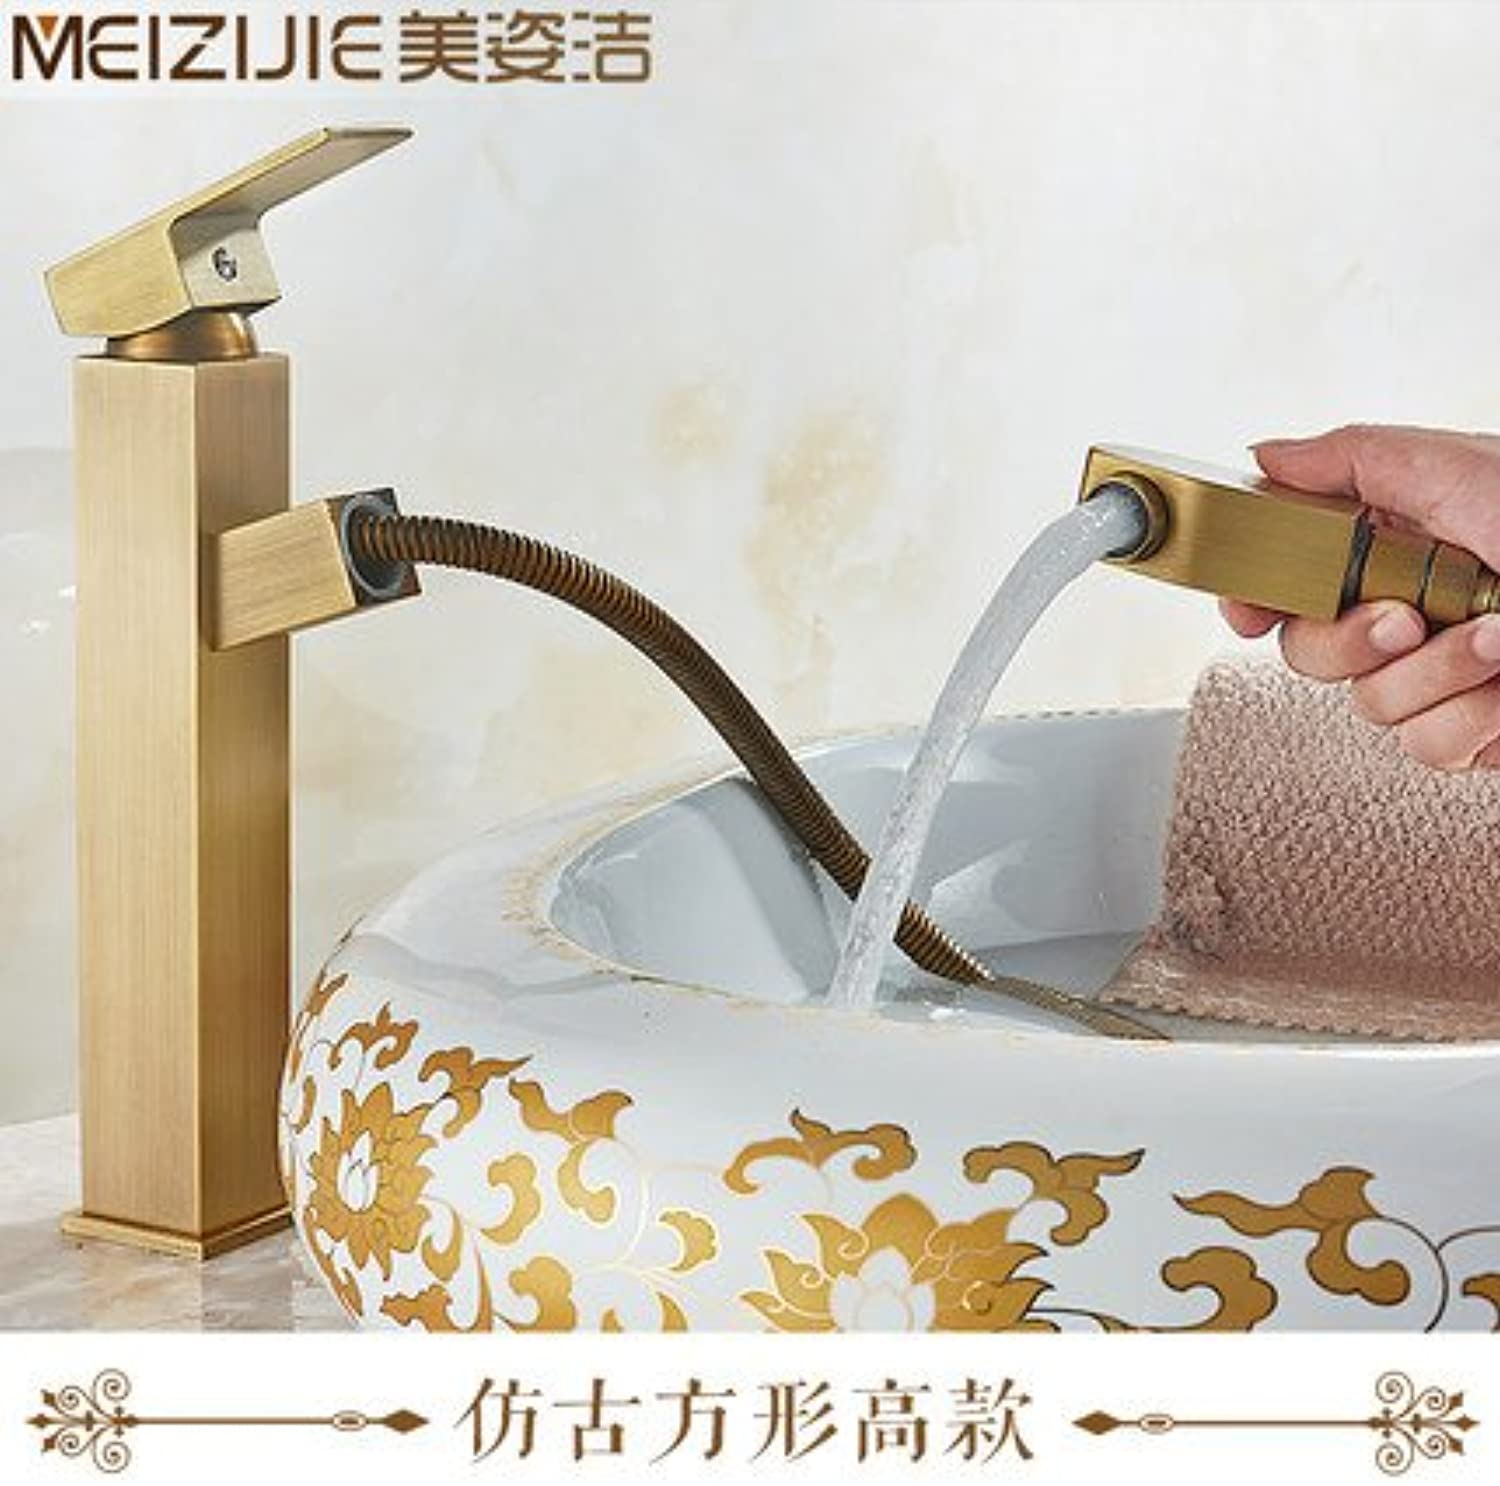 Maifeini Classic Copper Basin Mixer Pull Out The Faucet??The Bathroom Sink Faucet Basin Mixer Brass Tap?, Bronze, Yellow